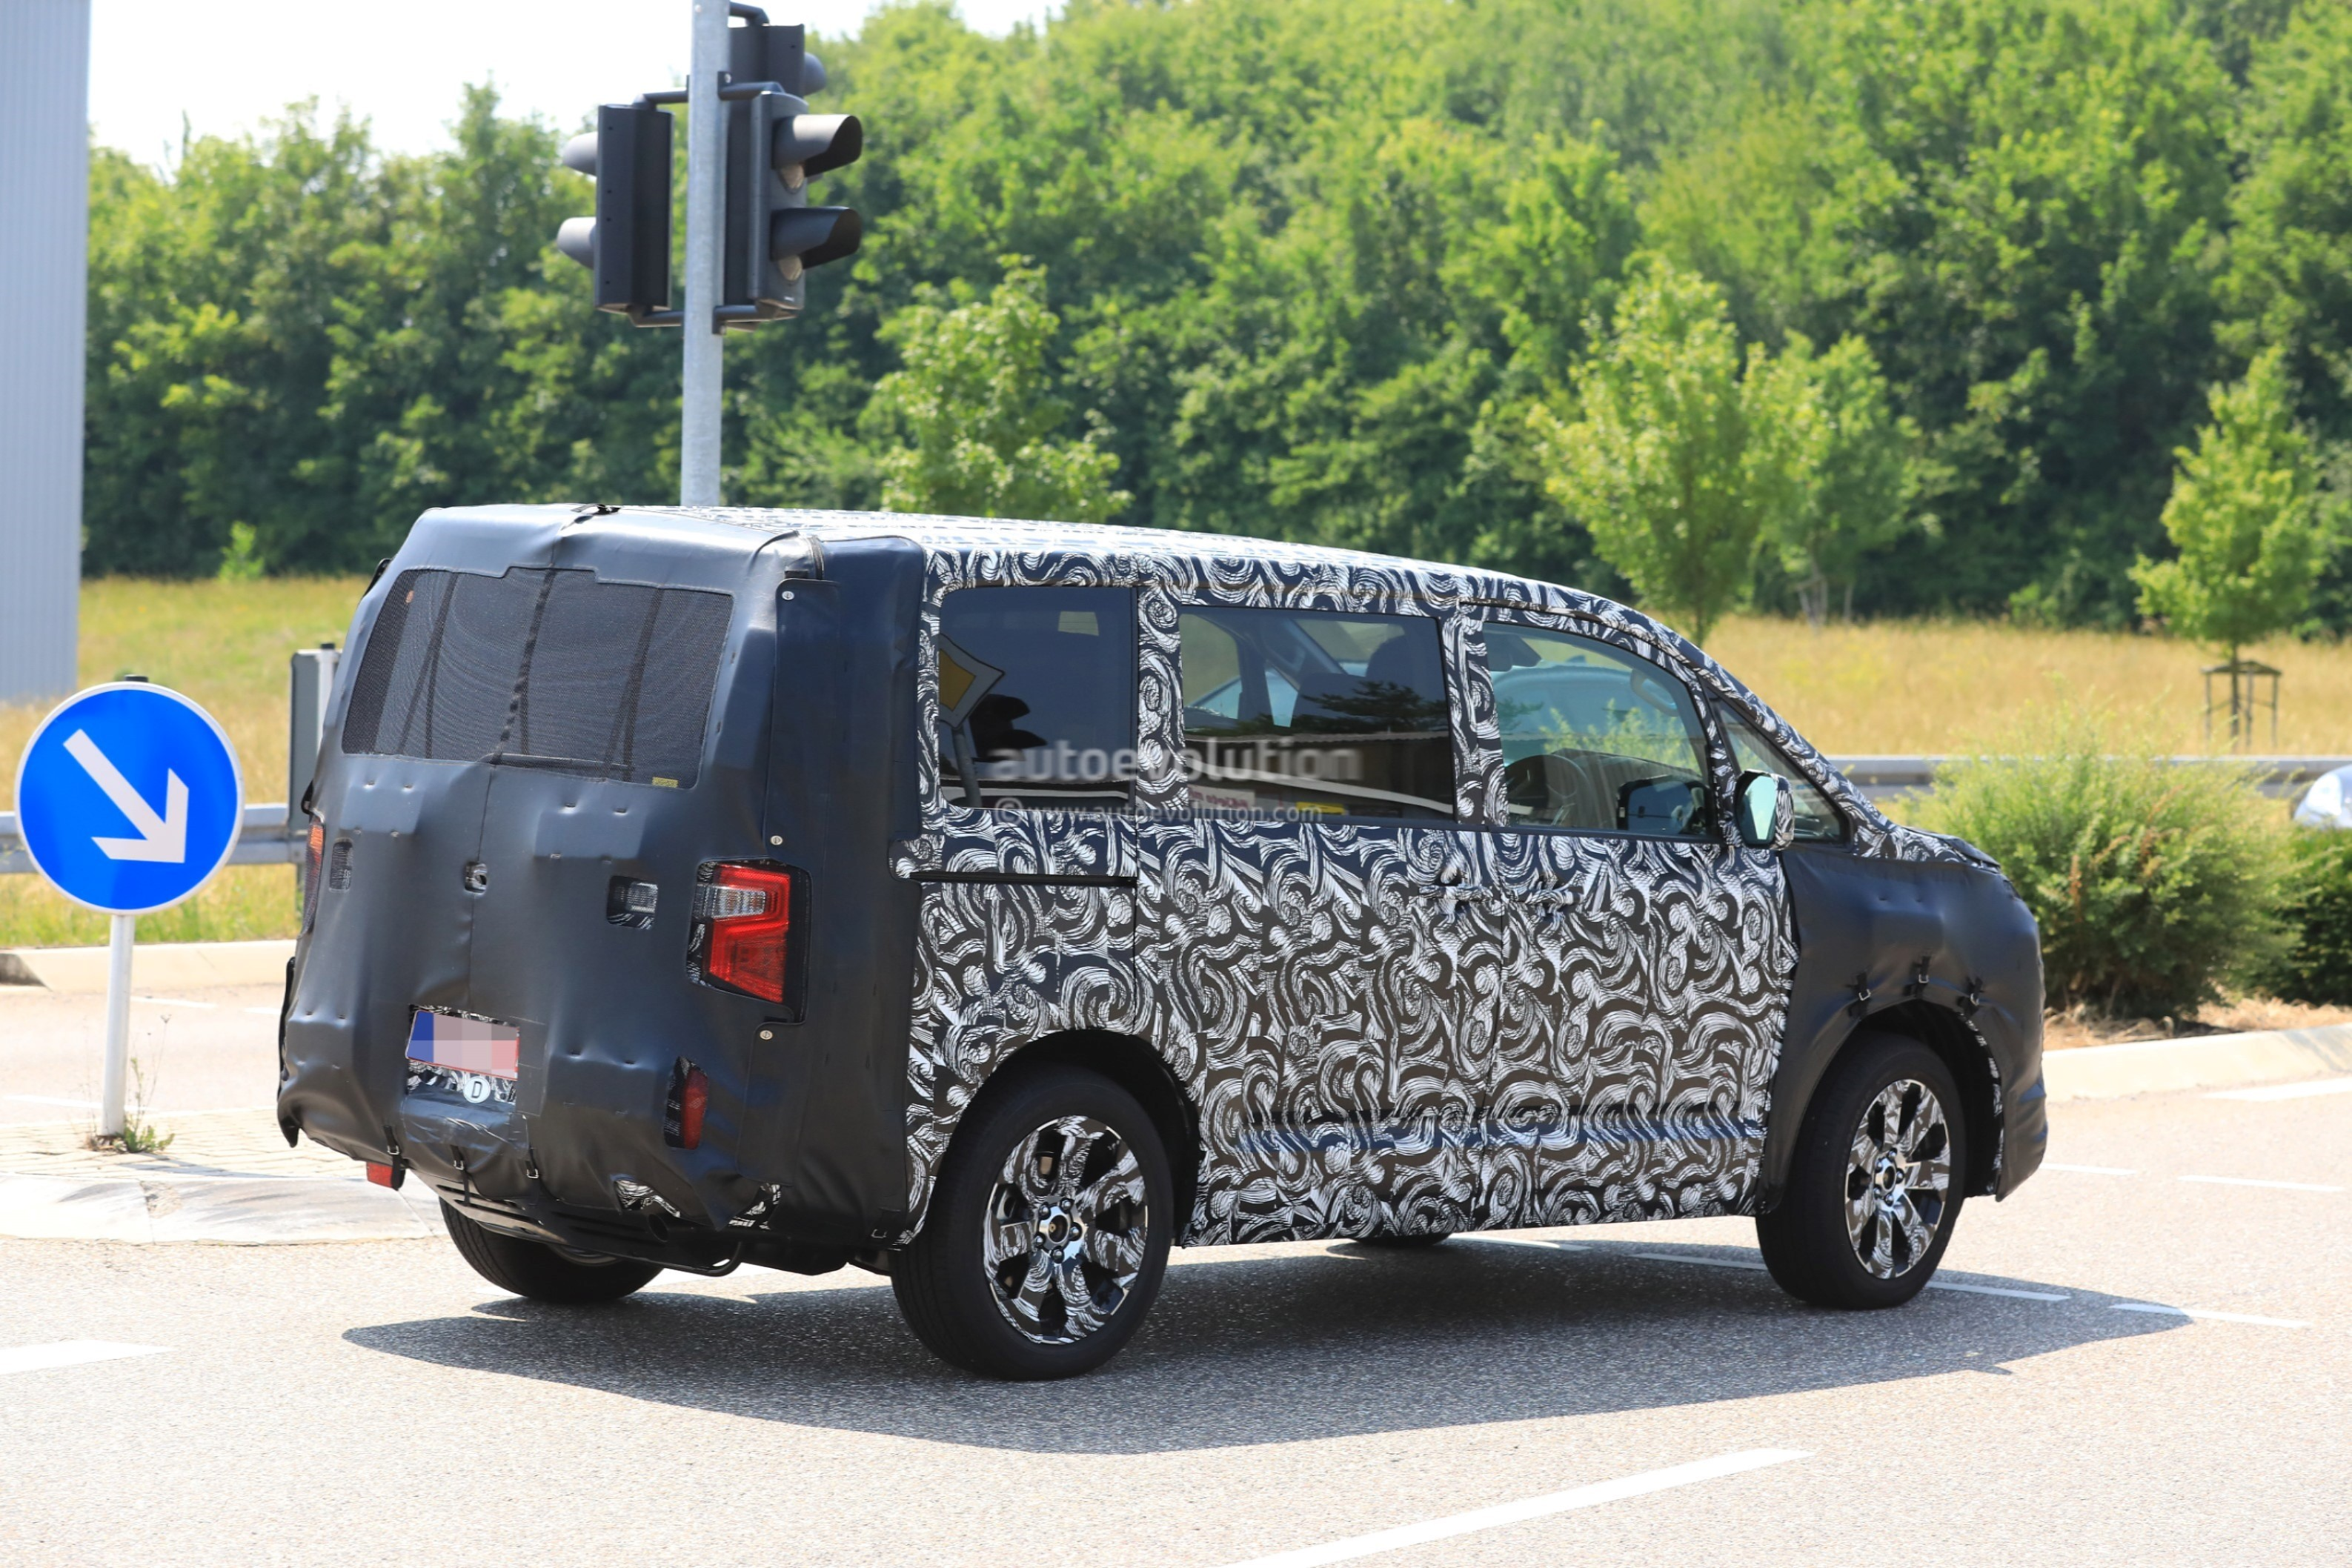 2019 Mitsubishi Delica Combines MPV Practicality With Crossover Styling - autoevolution